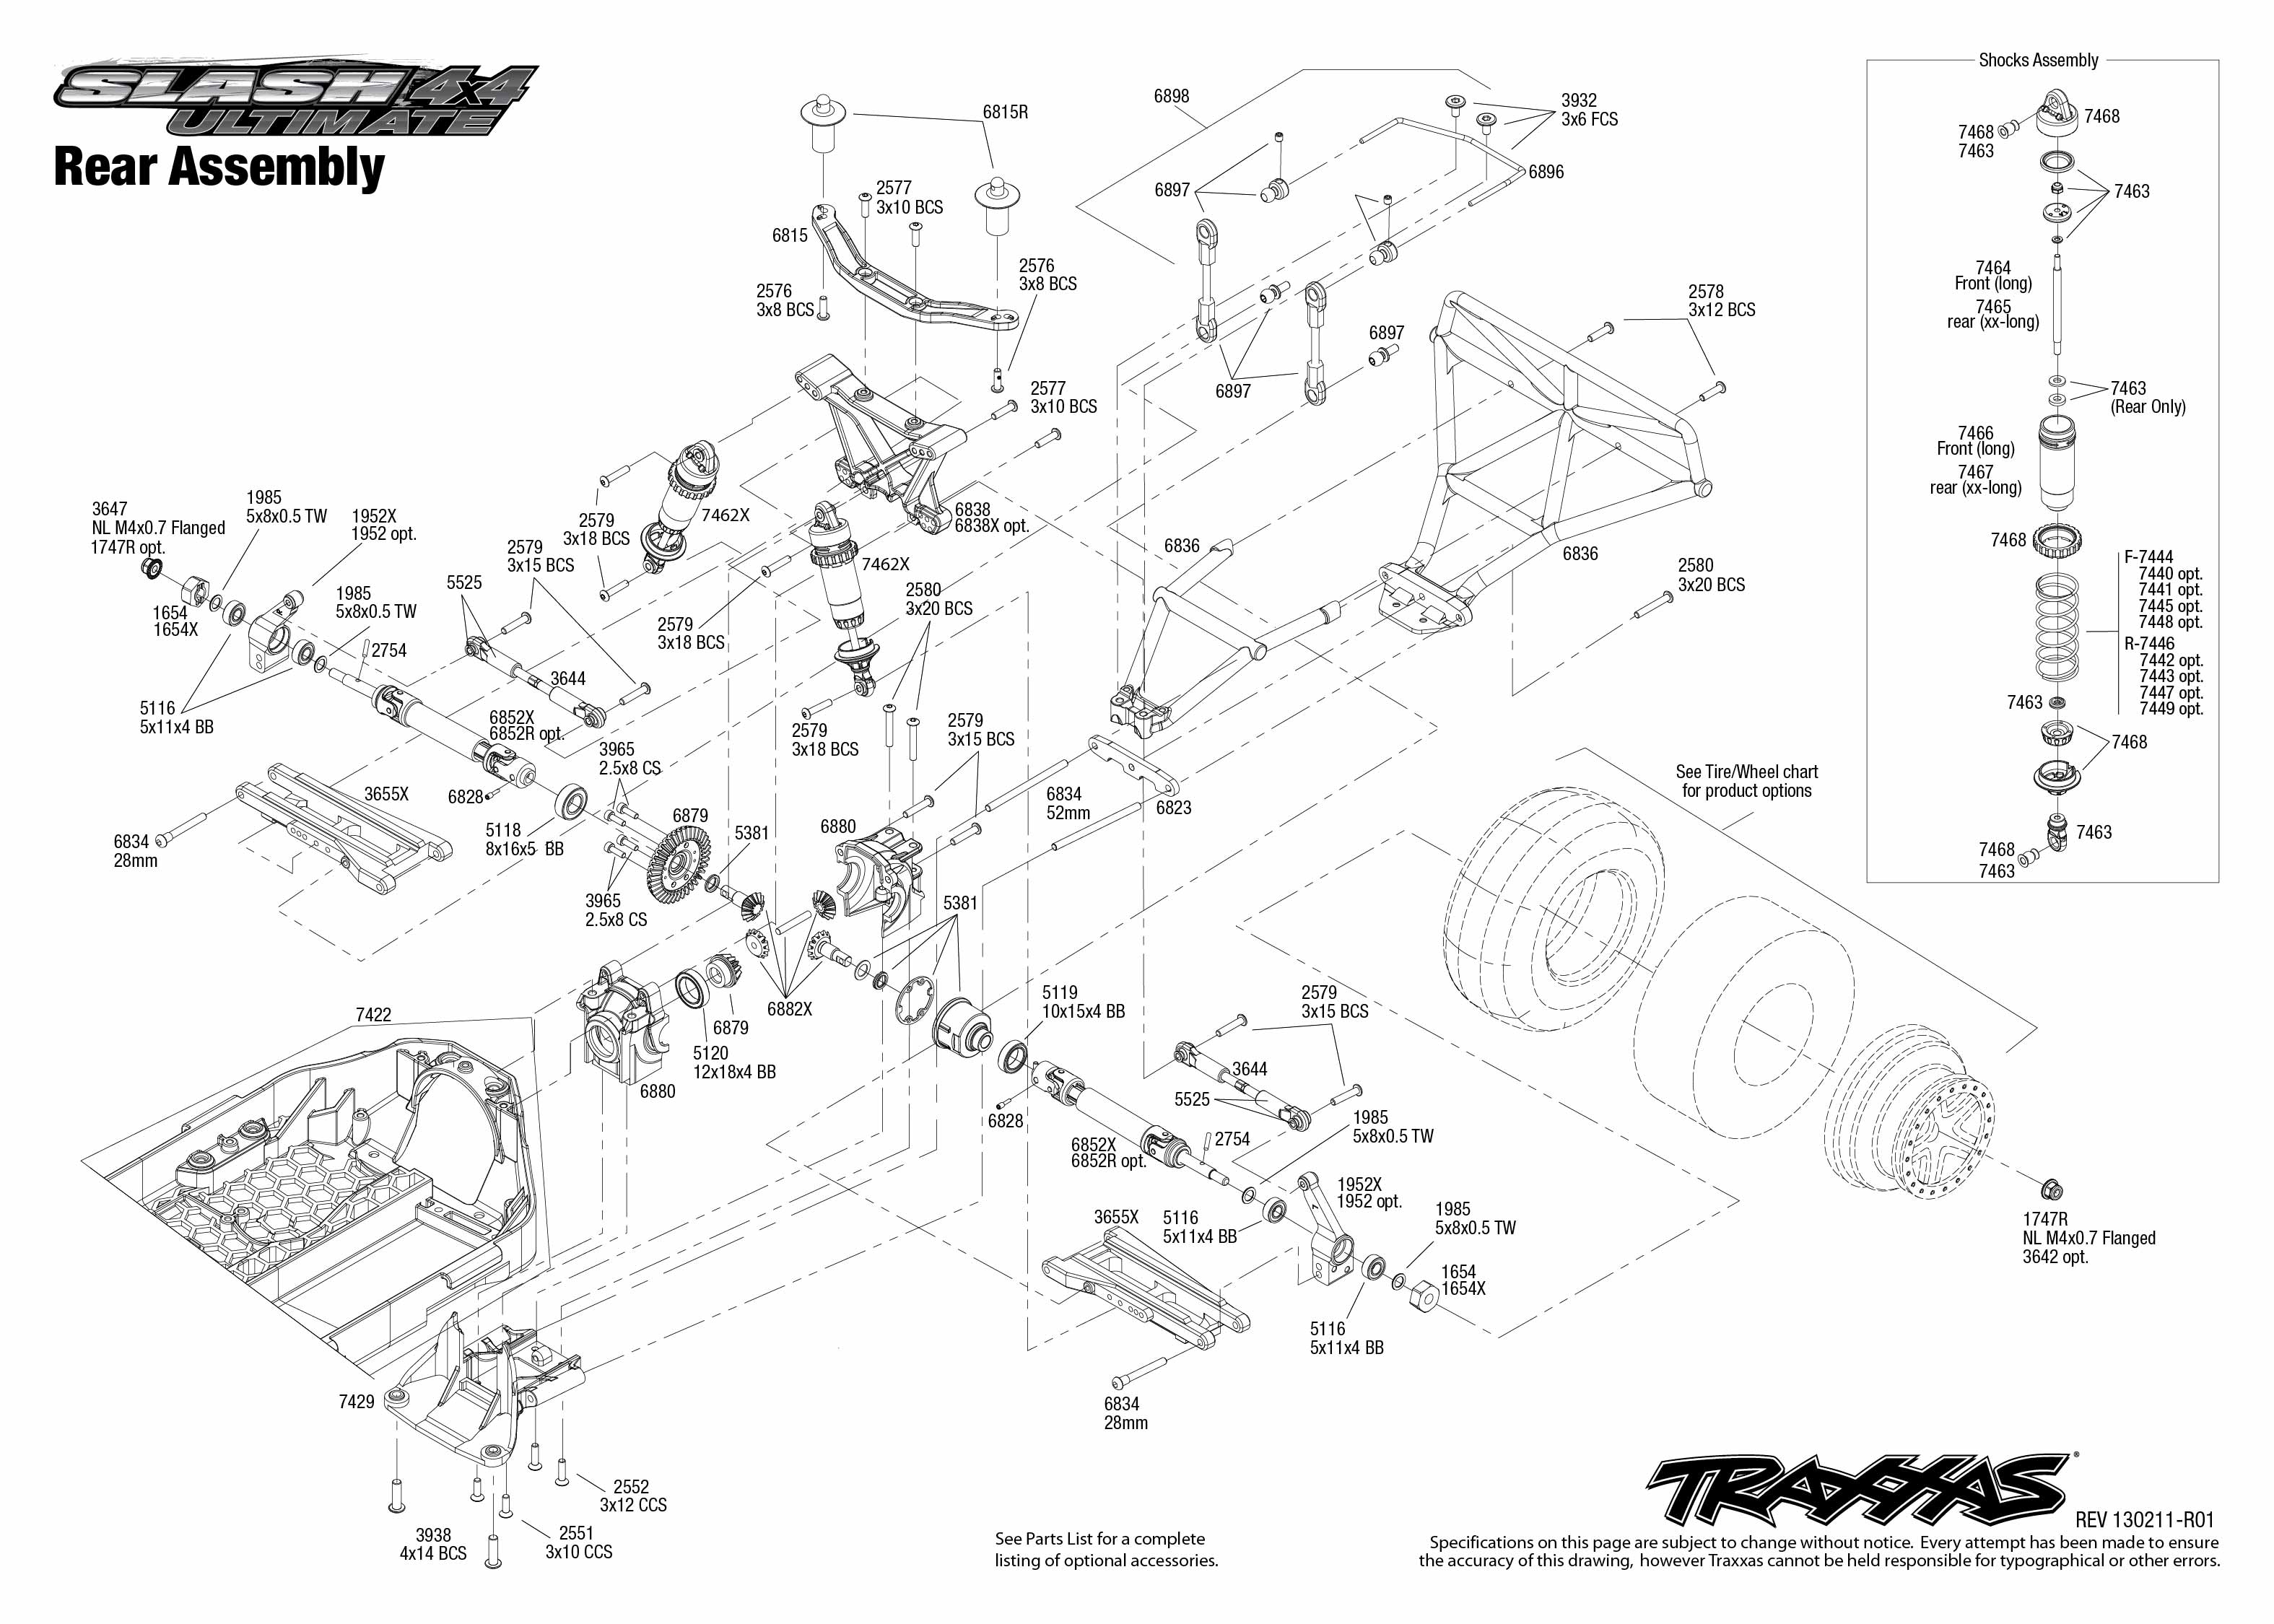 Traxxas Slash 4x4 Diagram Trusted Wiring Diagrams Ultimate Diy Enthusiasts 6808 Parts List 1 10